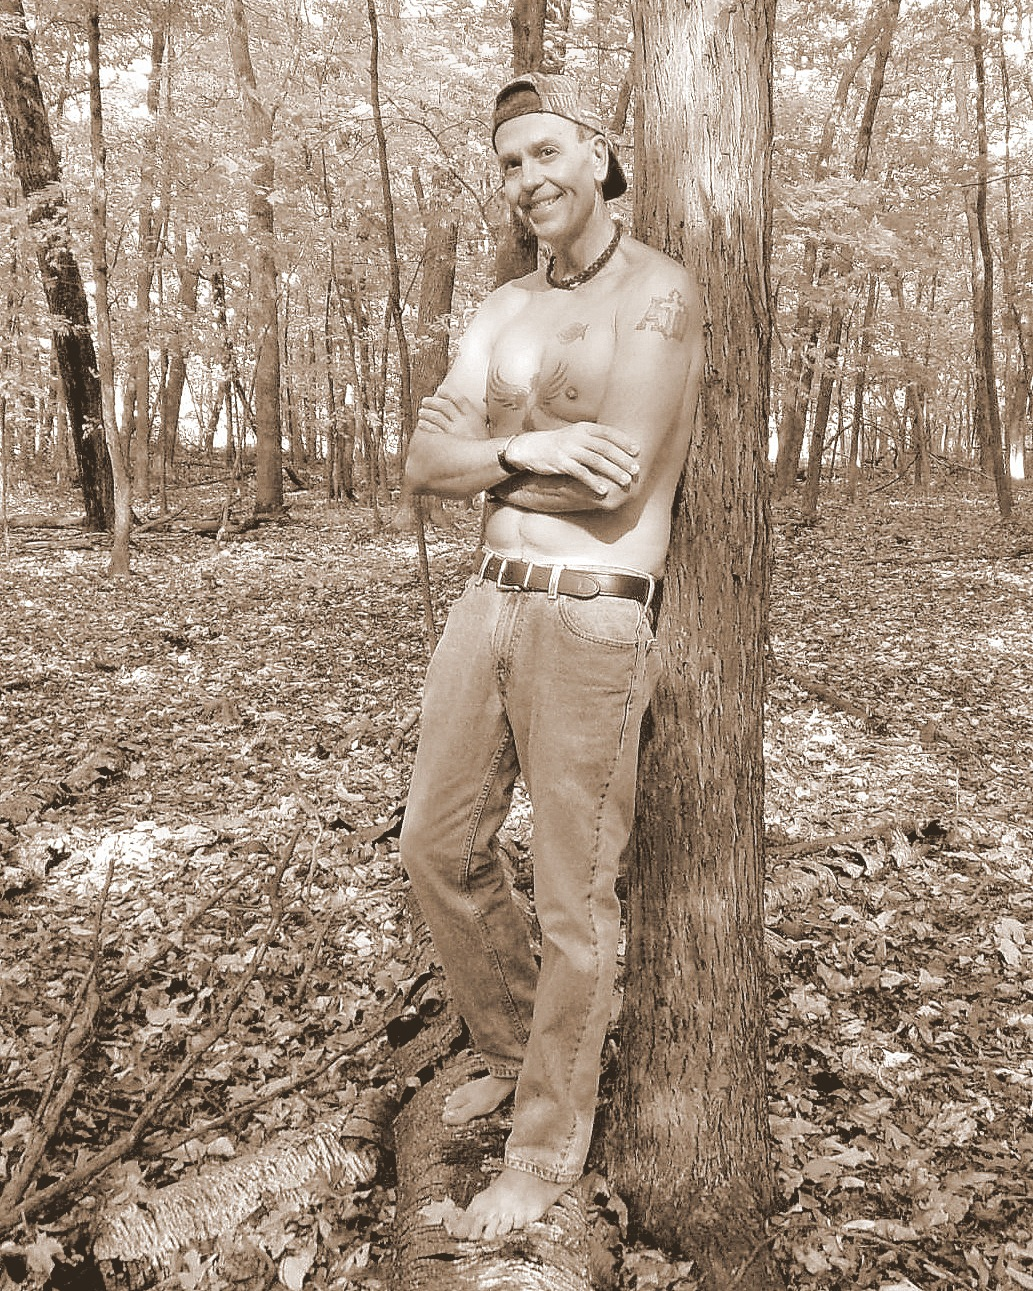 Barefoot Dude in the Woods by Gregg Michael